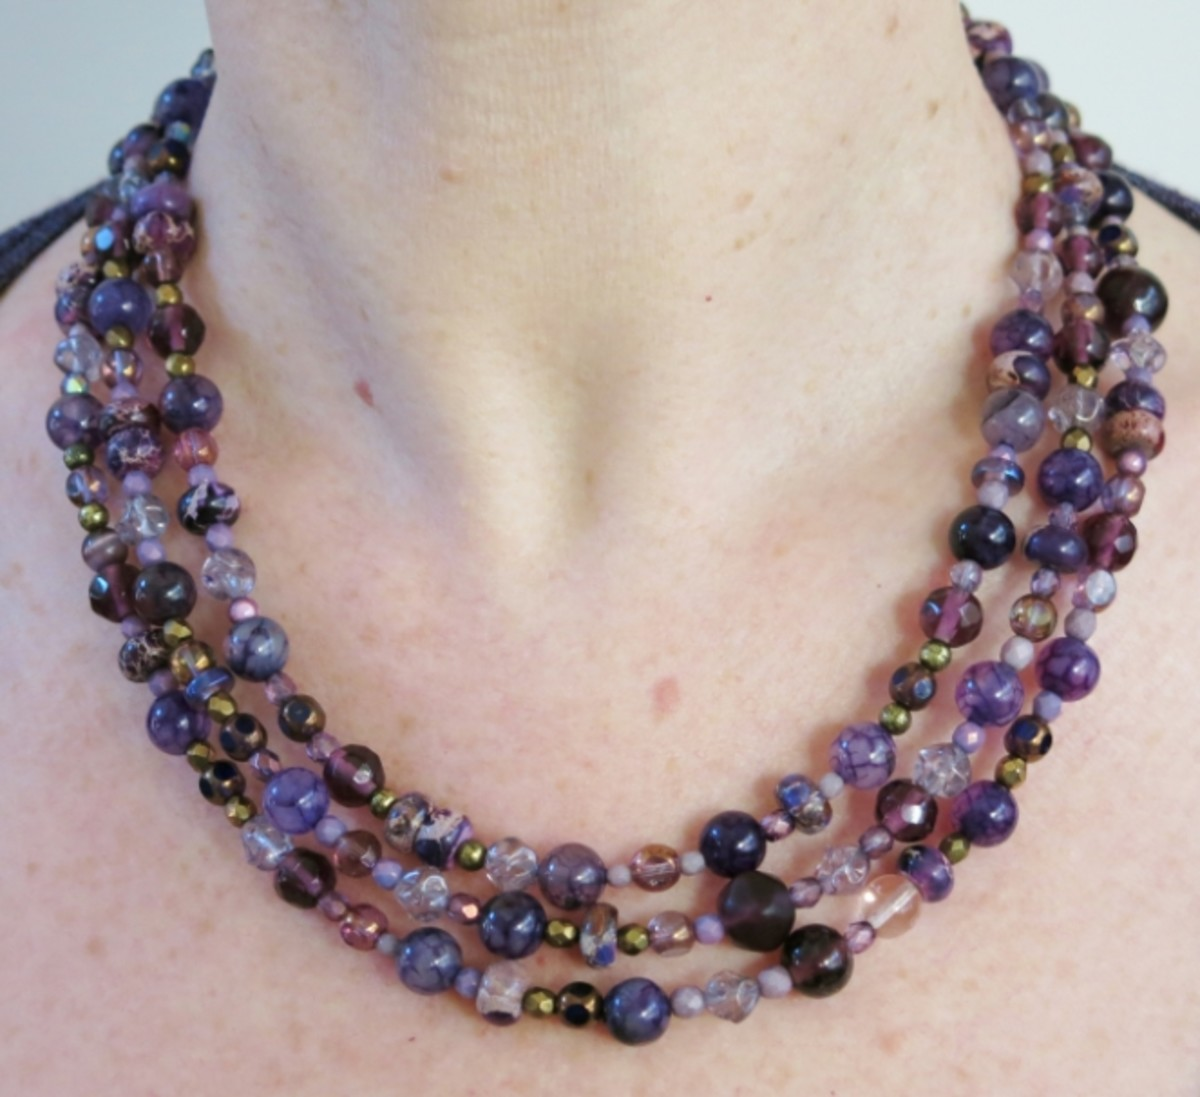 Directions for making a multi-strand beaded necklace.